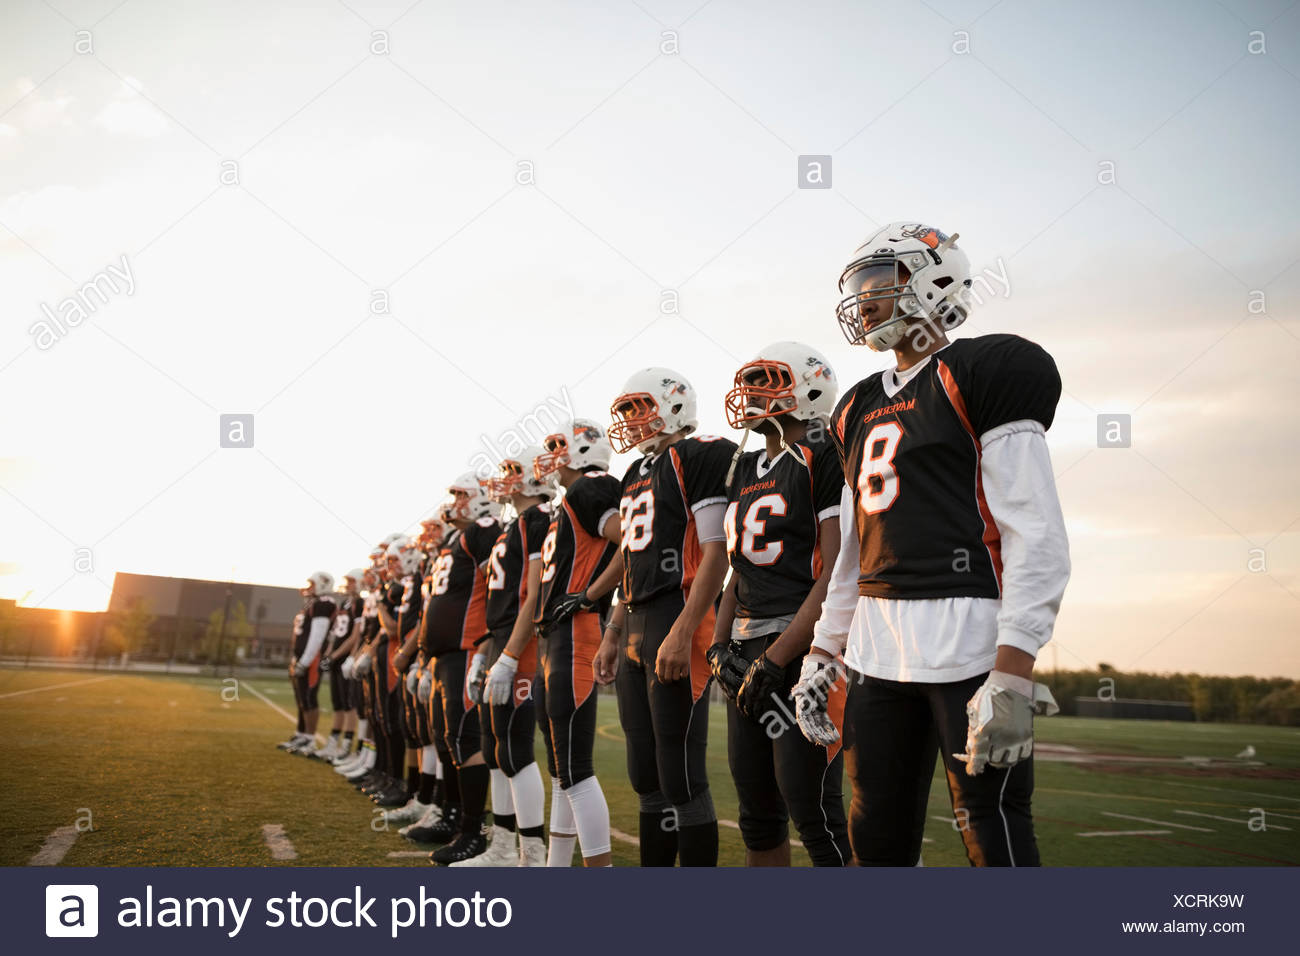 Teenage boy high school football team standing in a row on football field - Stock Image